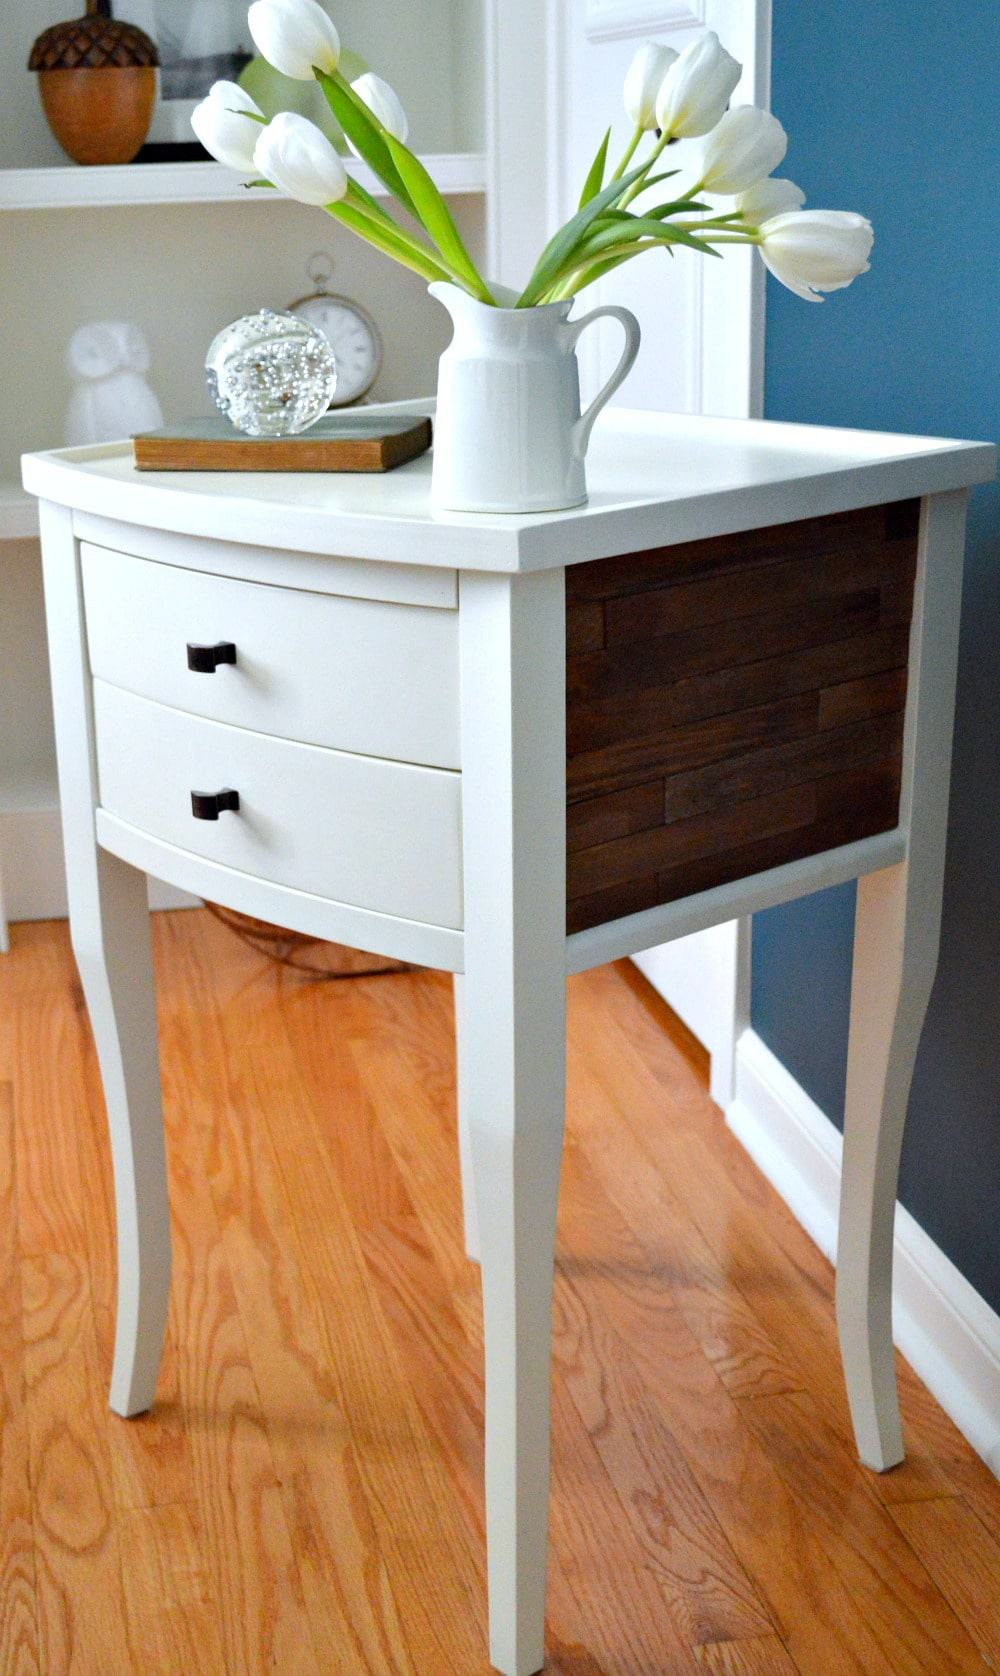 Home tour turquoise guest bedroom nightstand